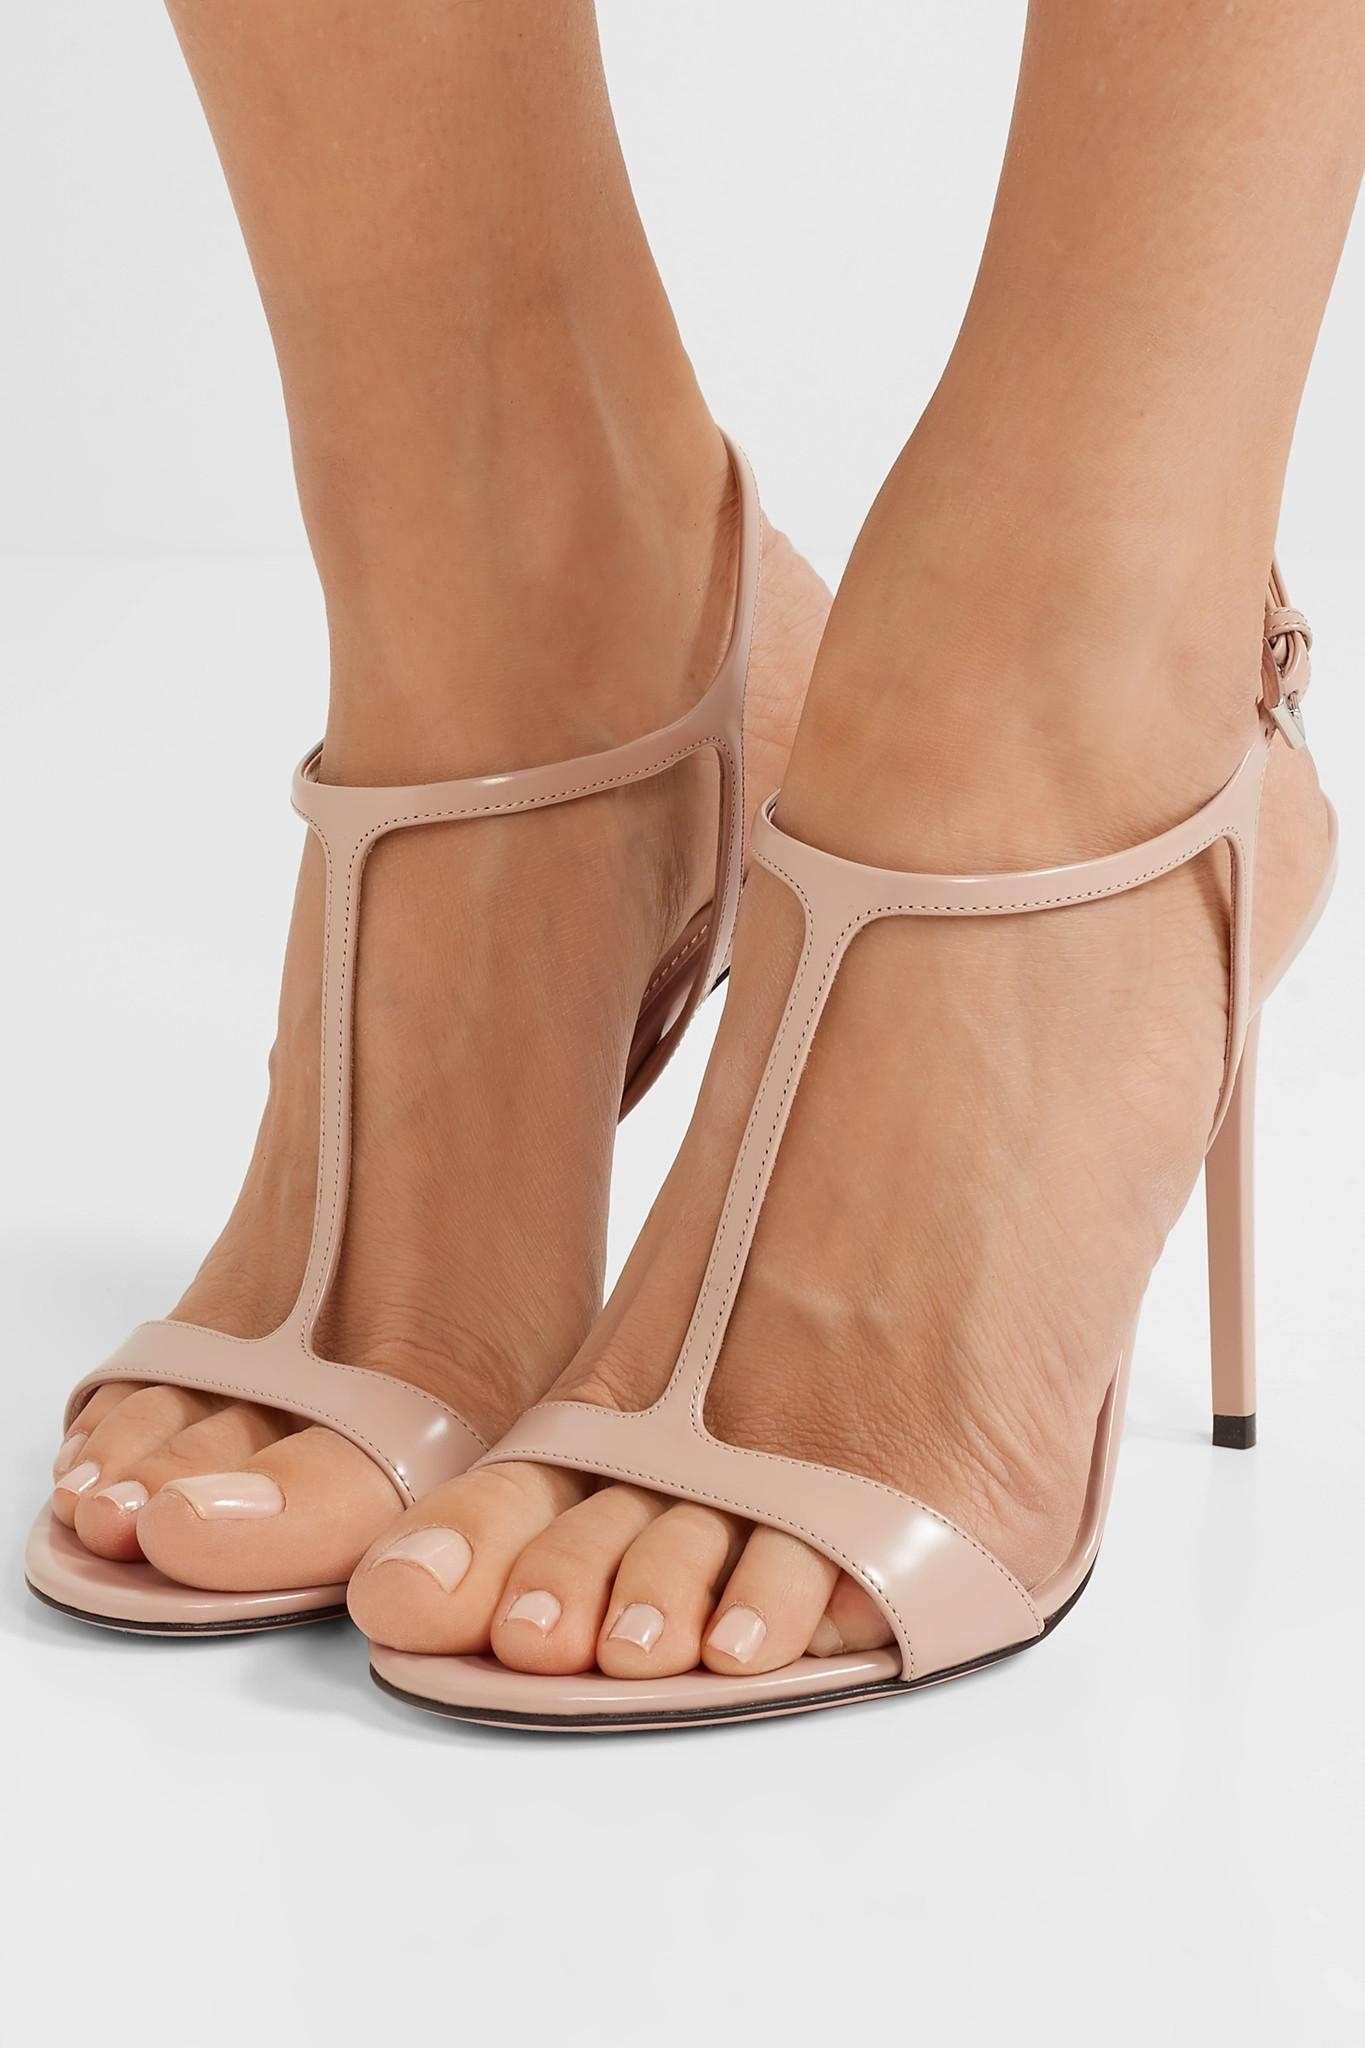 108a8299687 Prada - Natural 105 Glossed-leather Sandals - Lyst. View fullscreen